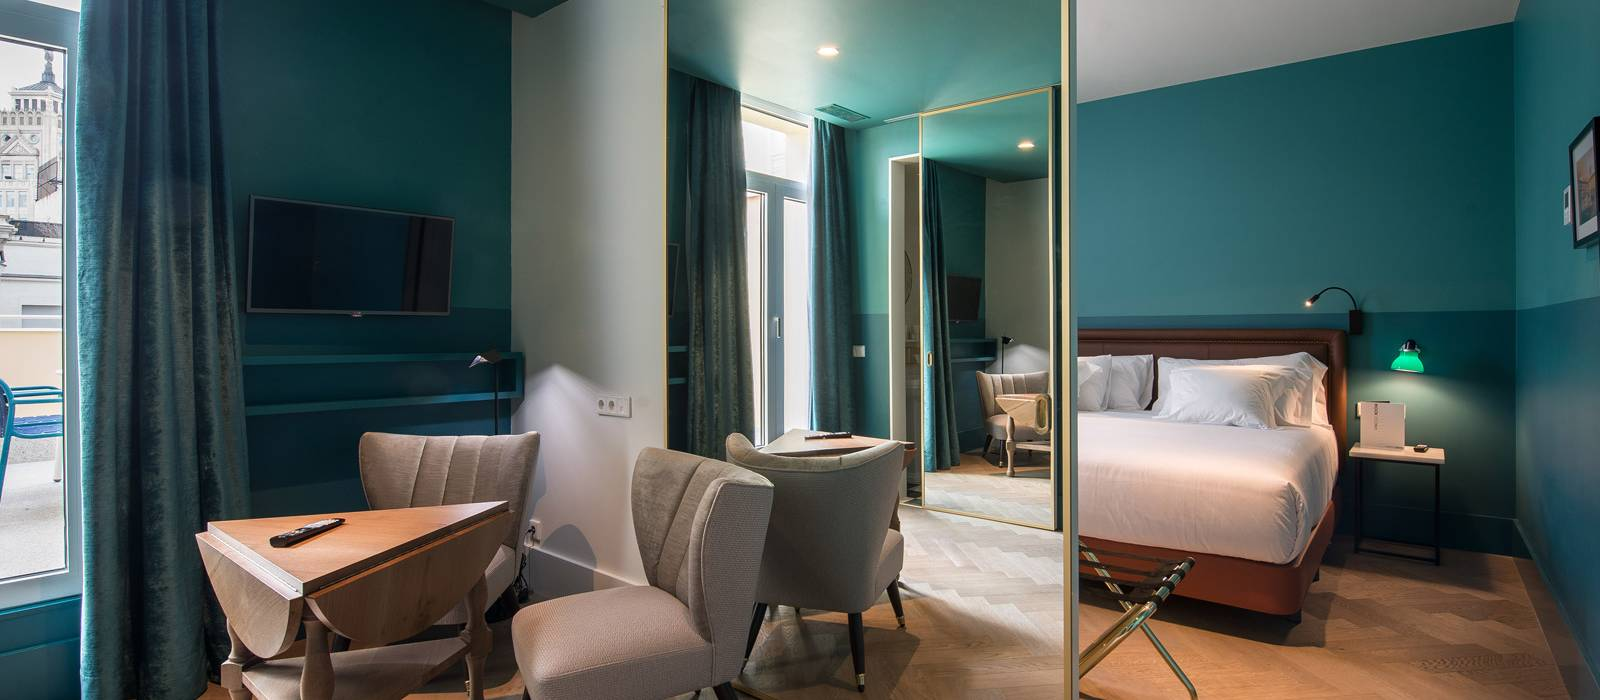 City Break Suite - Vincci The Mint 4*